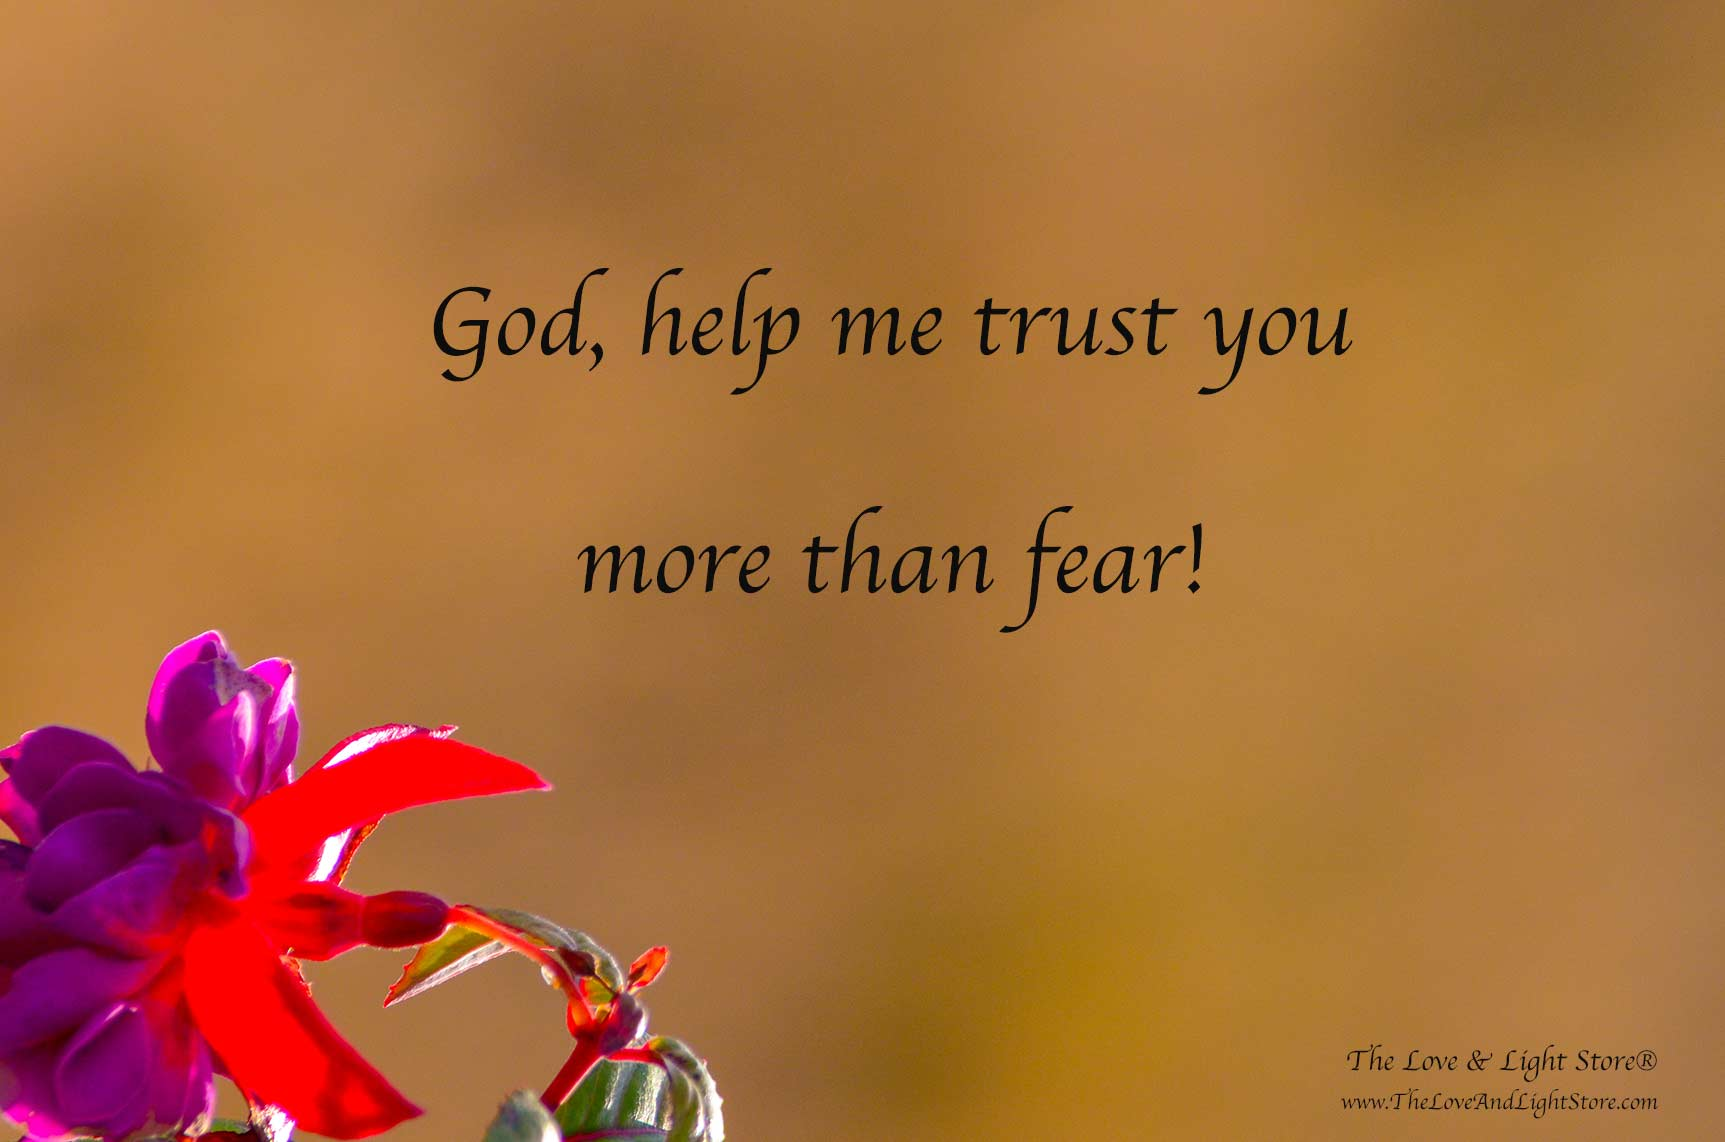 In this challenge, my lesson is to learn to deepen my trust in the goodness of God and the Divine order, rather than trusting the fearful ego.